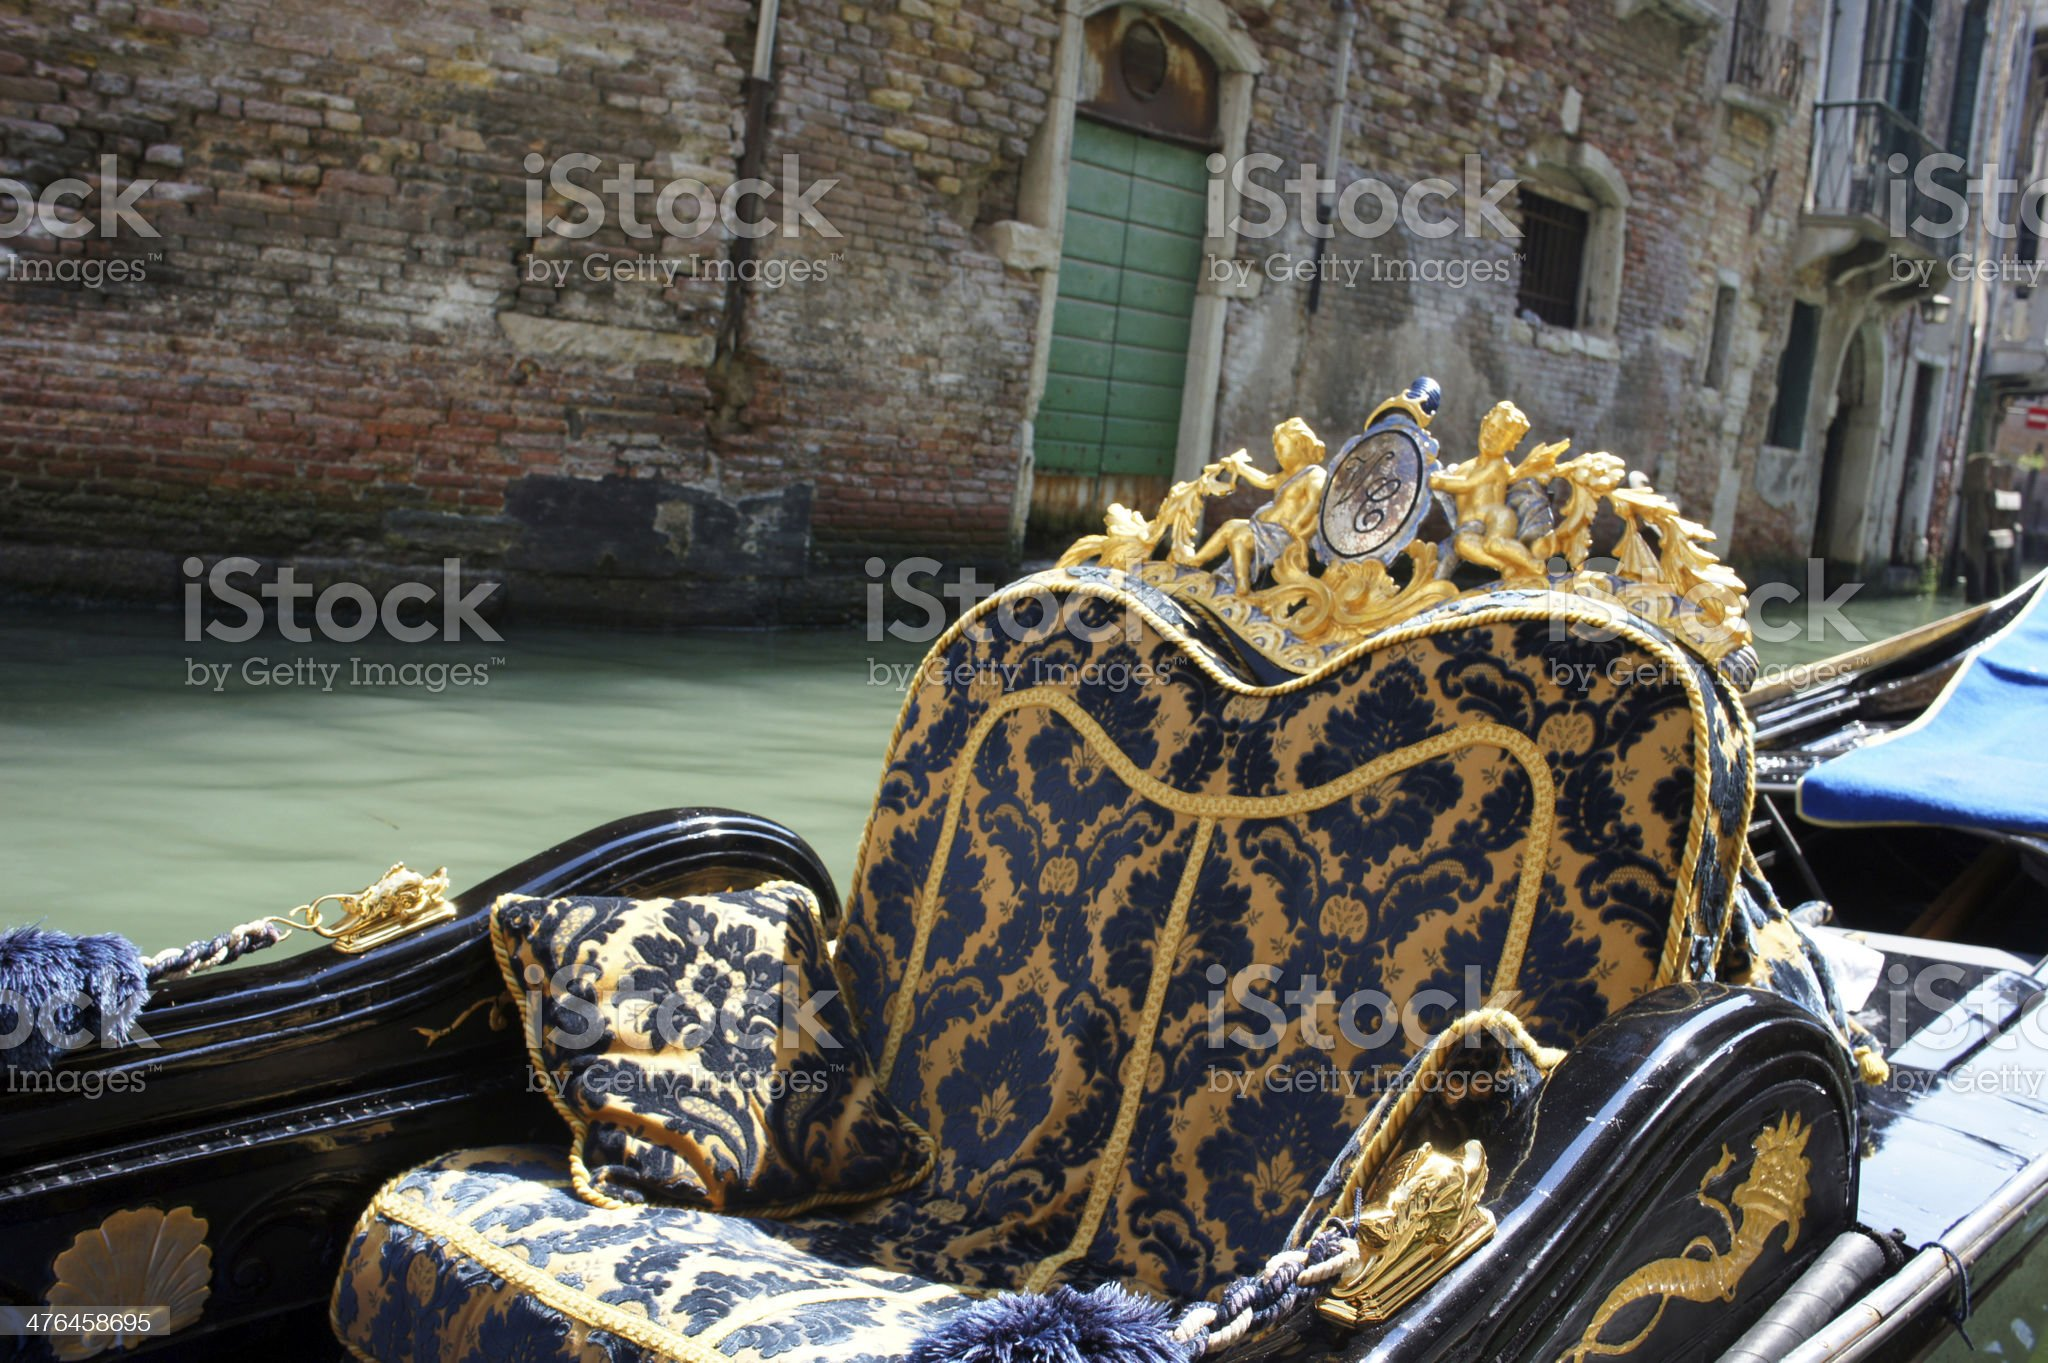 Close-up gondola on a canal in Venice, Italy royalty-free stock photo